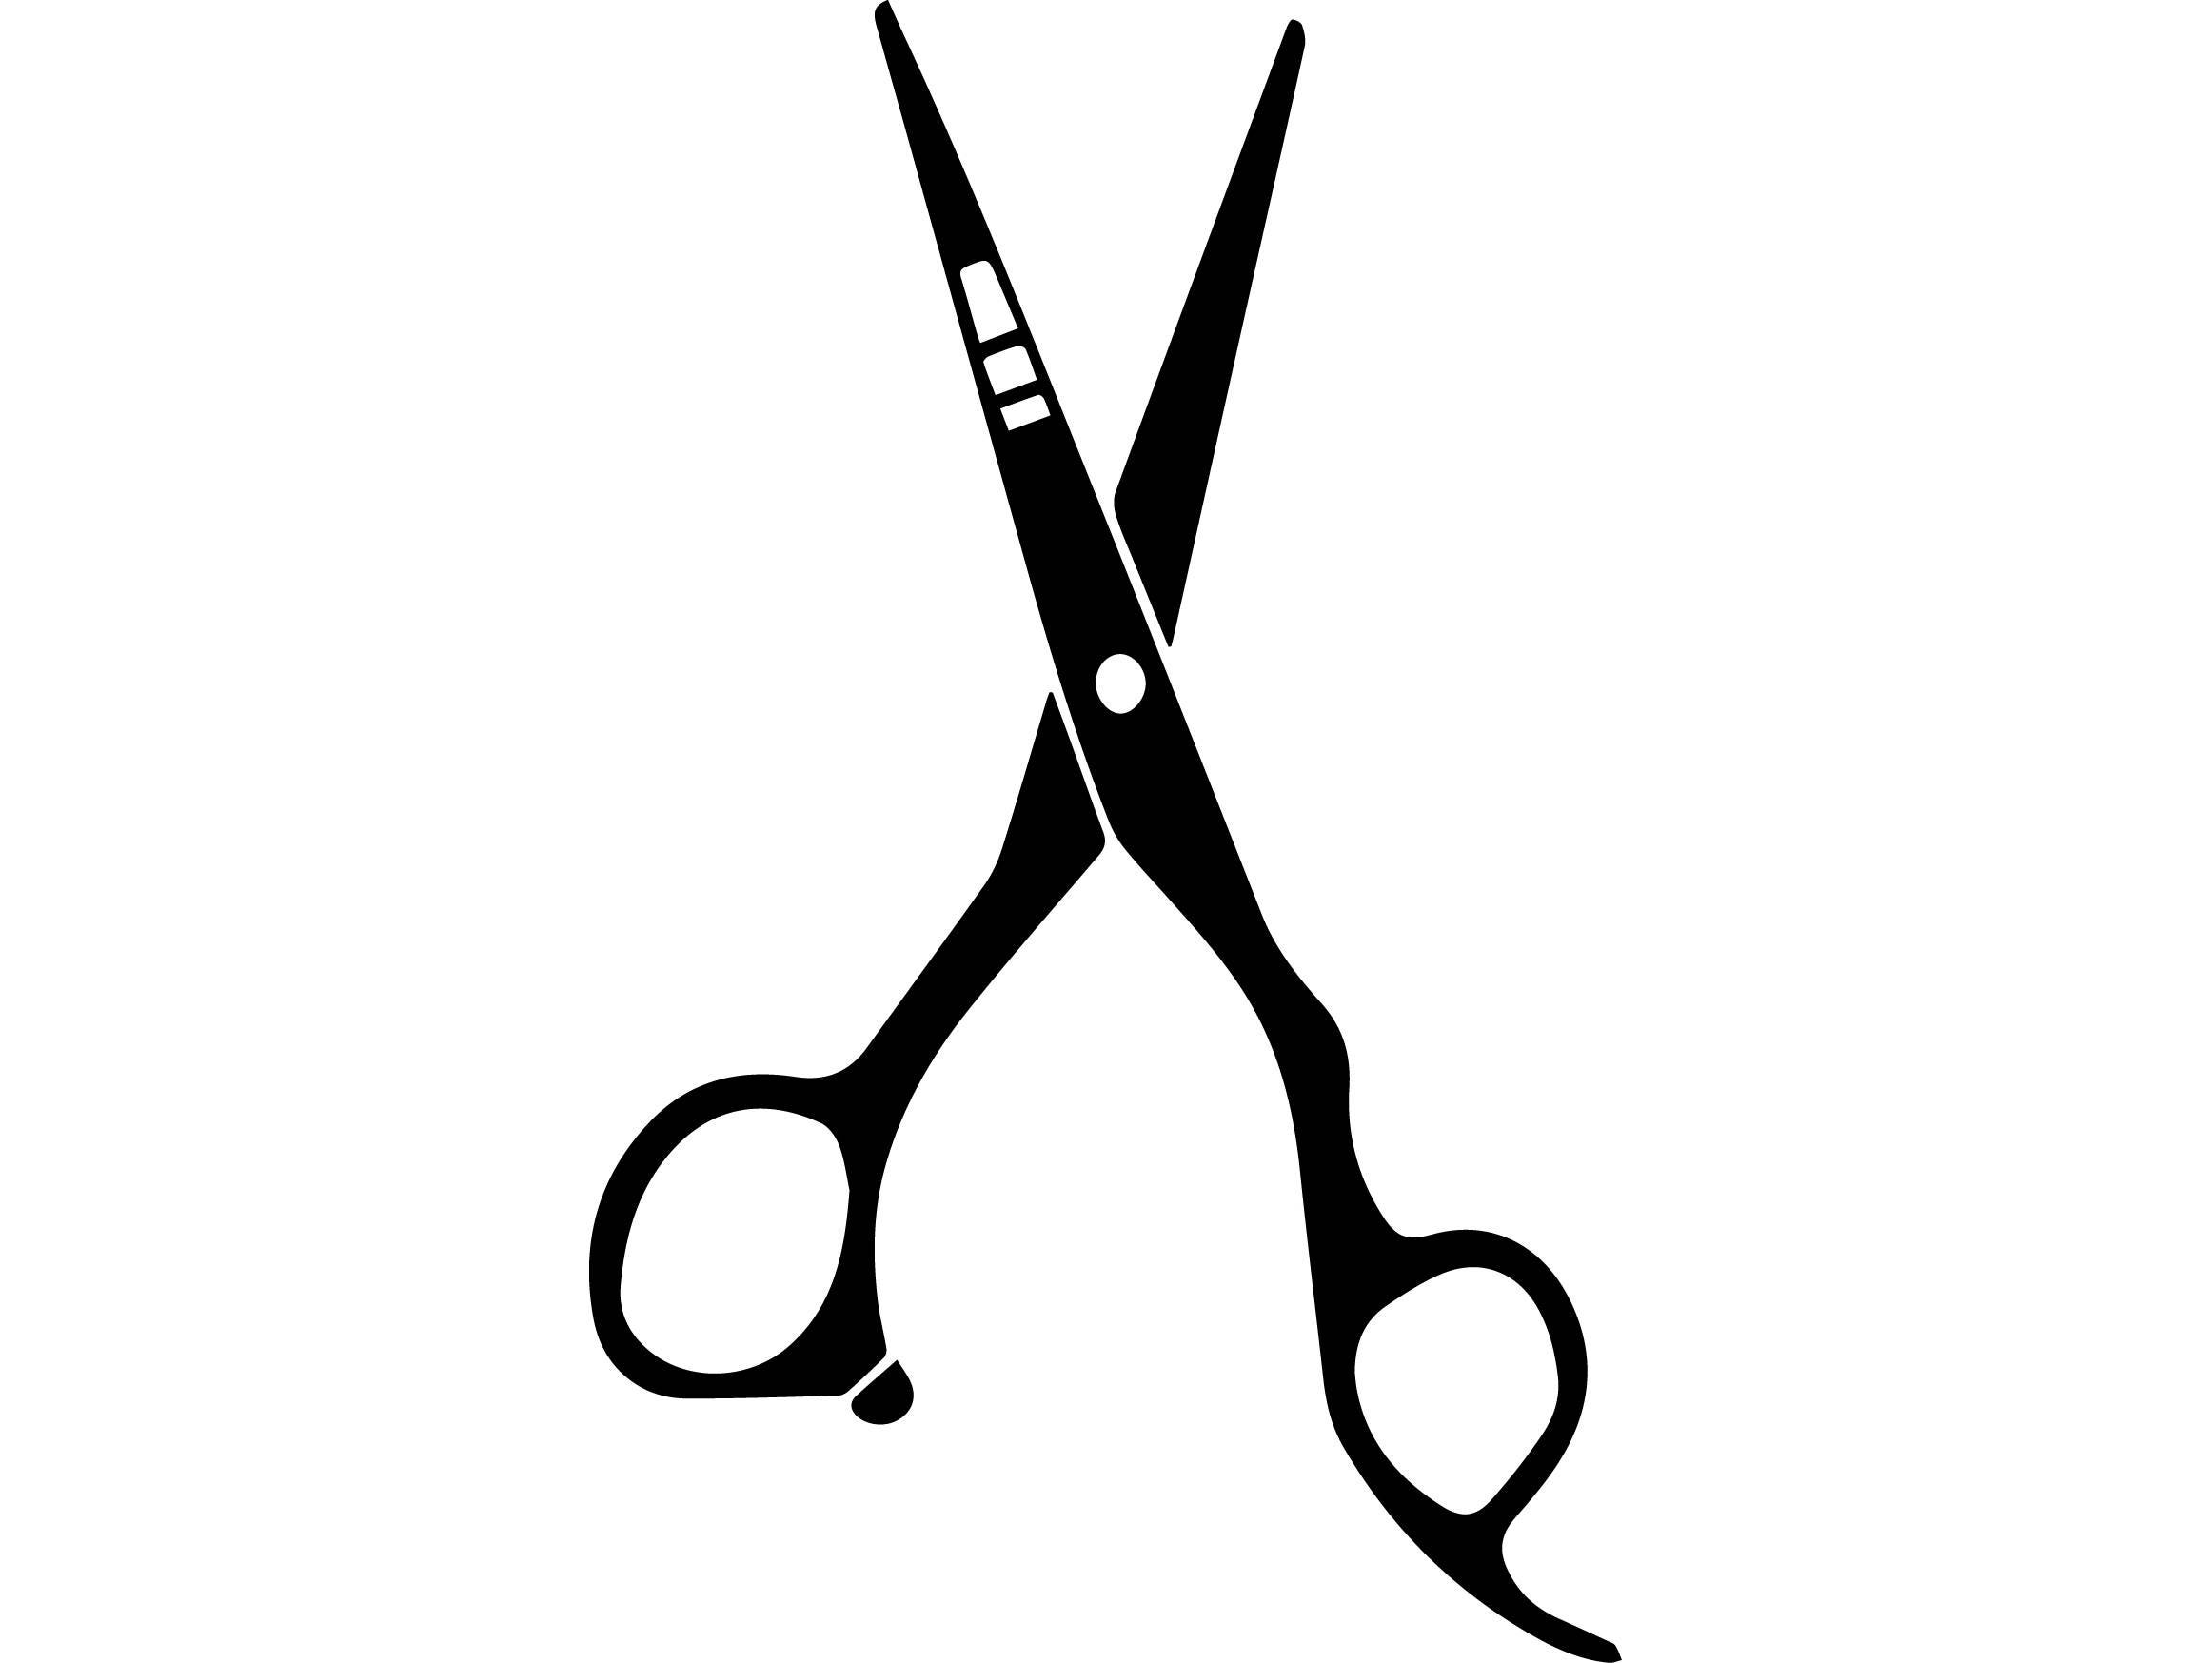 scissors comb barber tools grooming salon blade stripes barbershop  svg  eps  png vector space